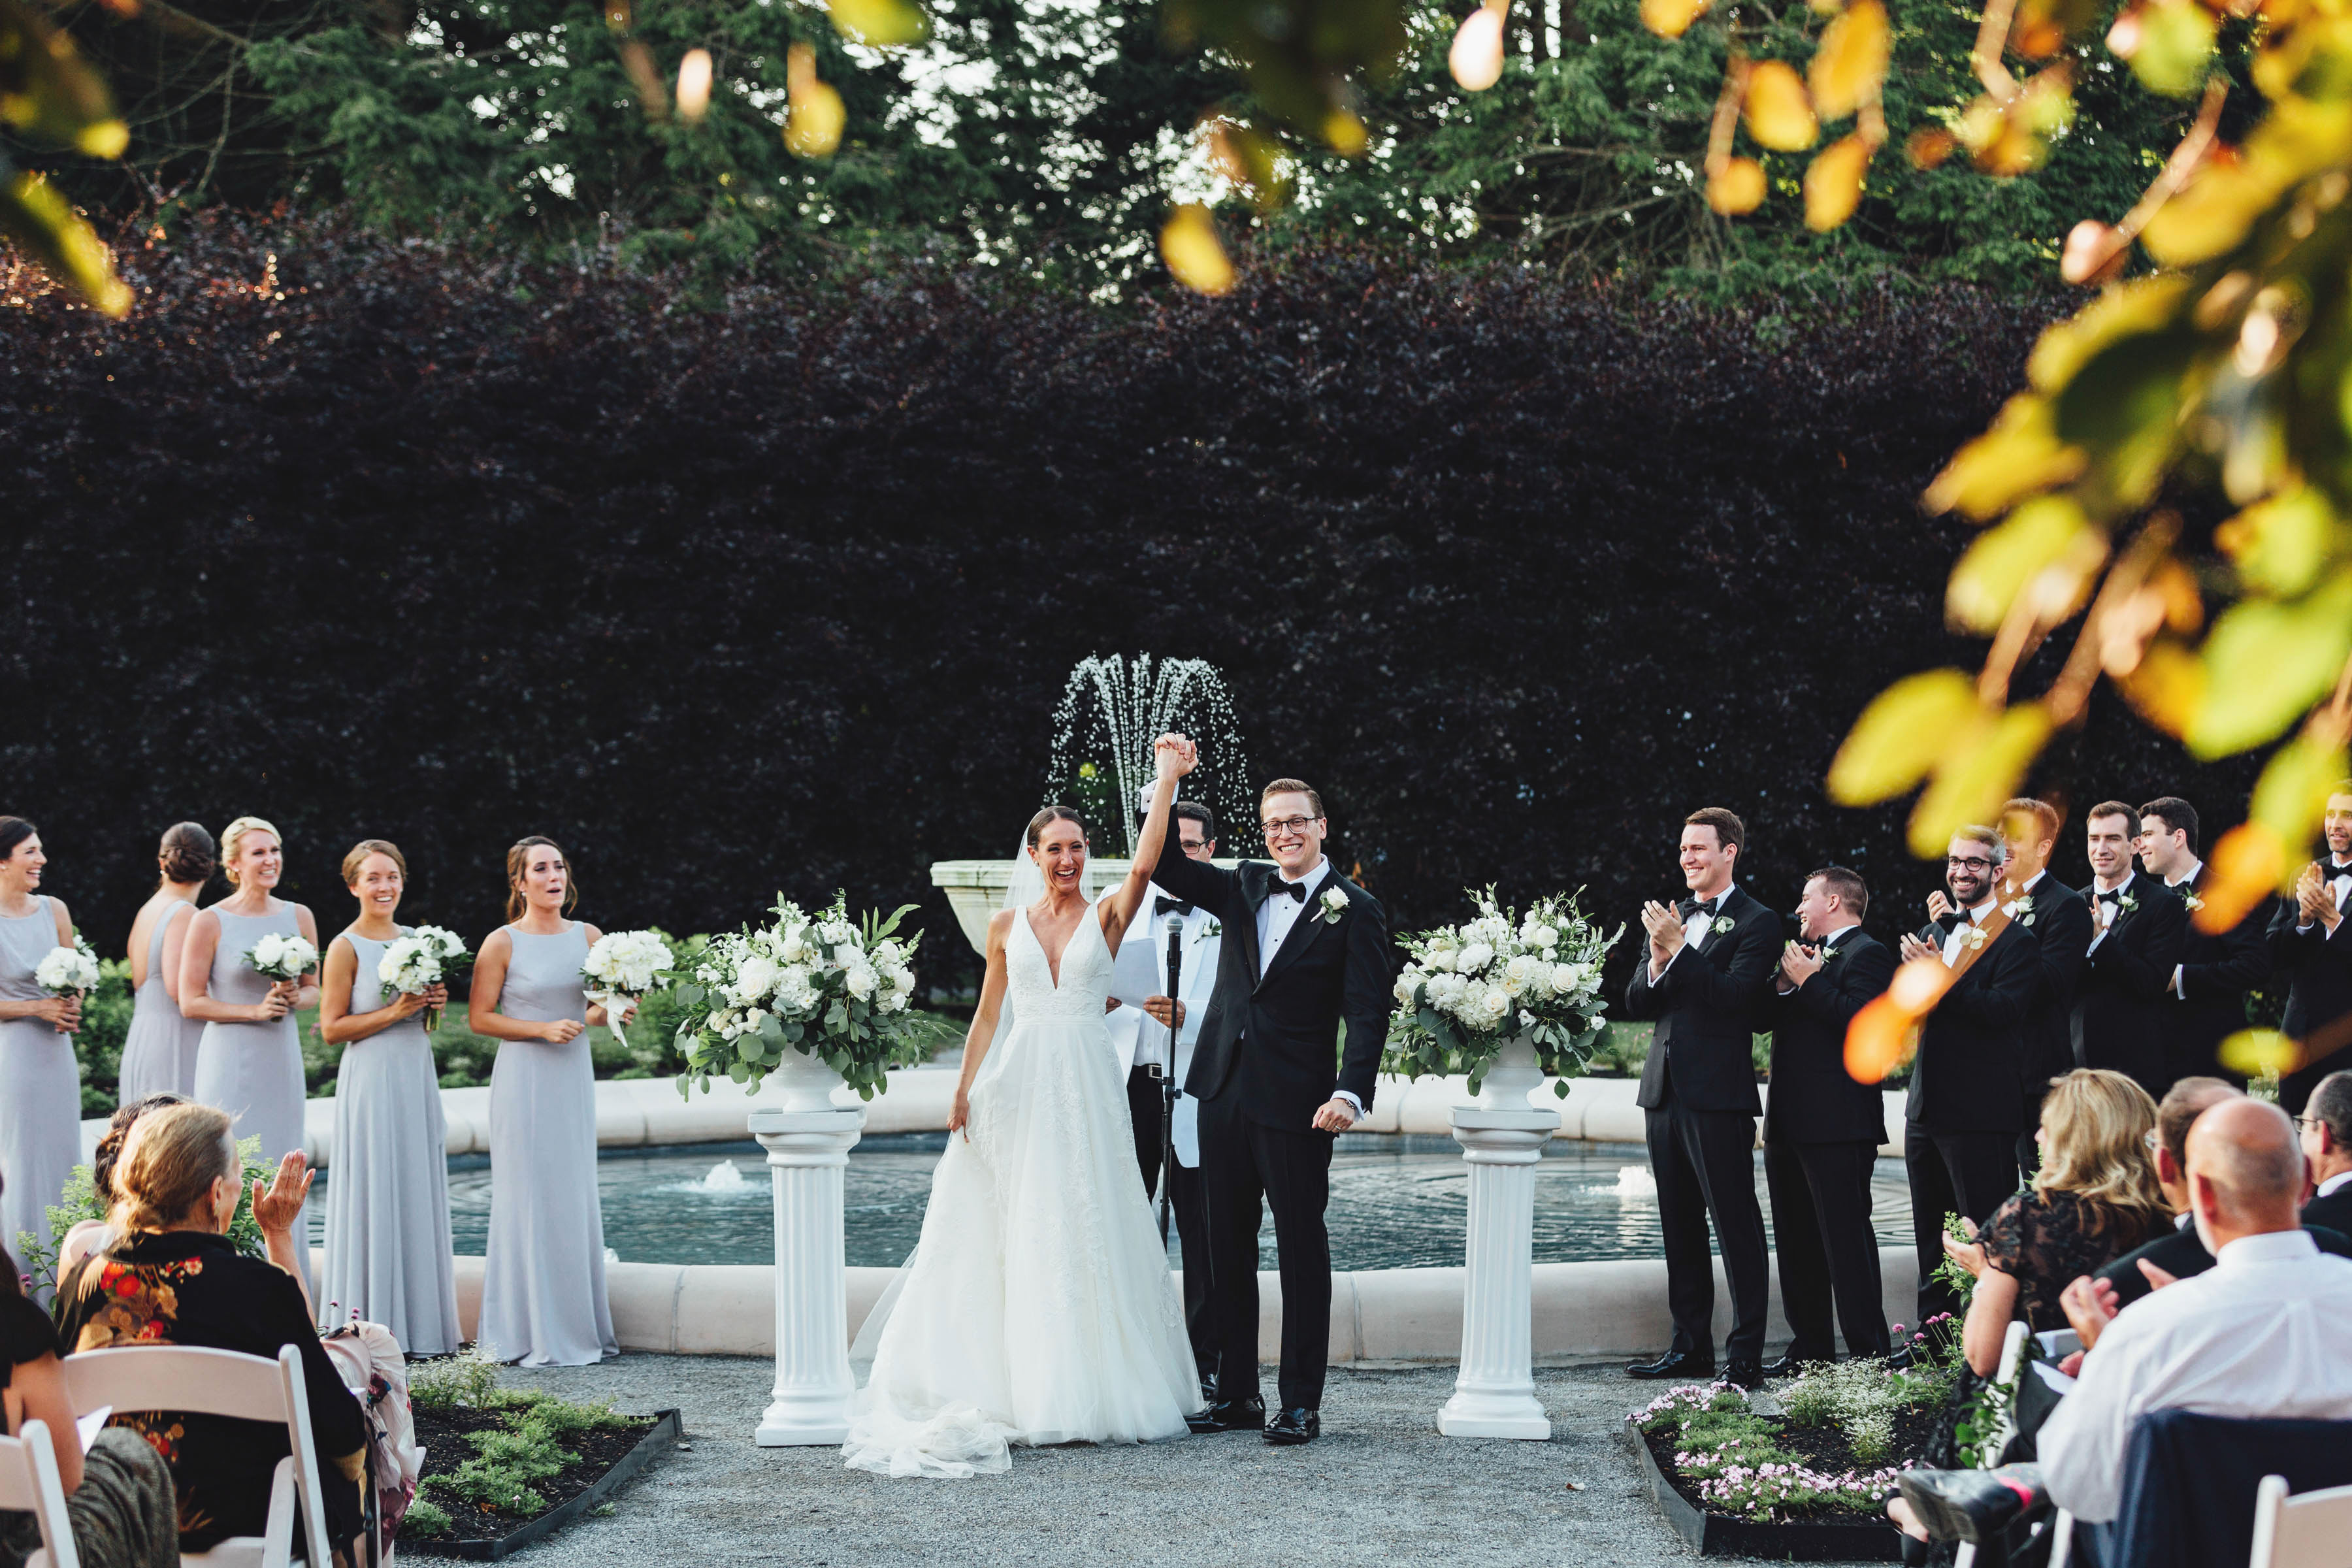 The gardens at Elm Bank Wedding and events